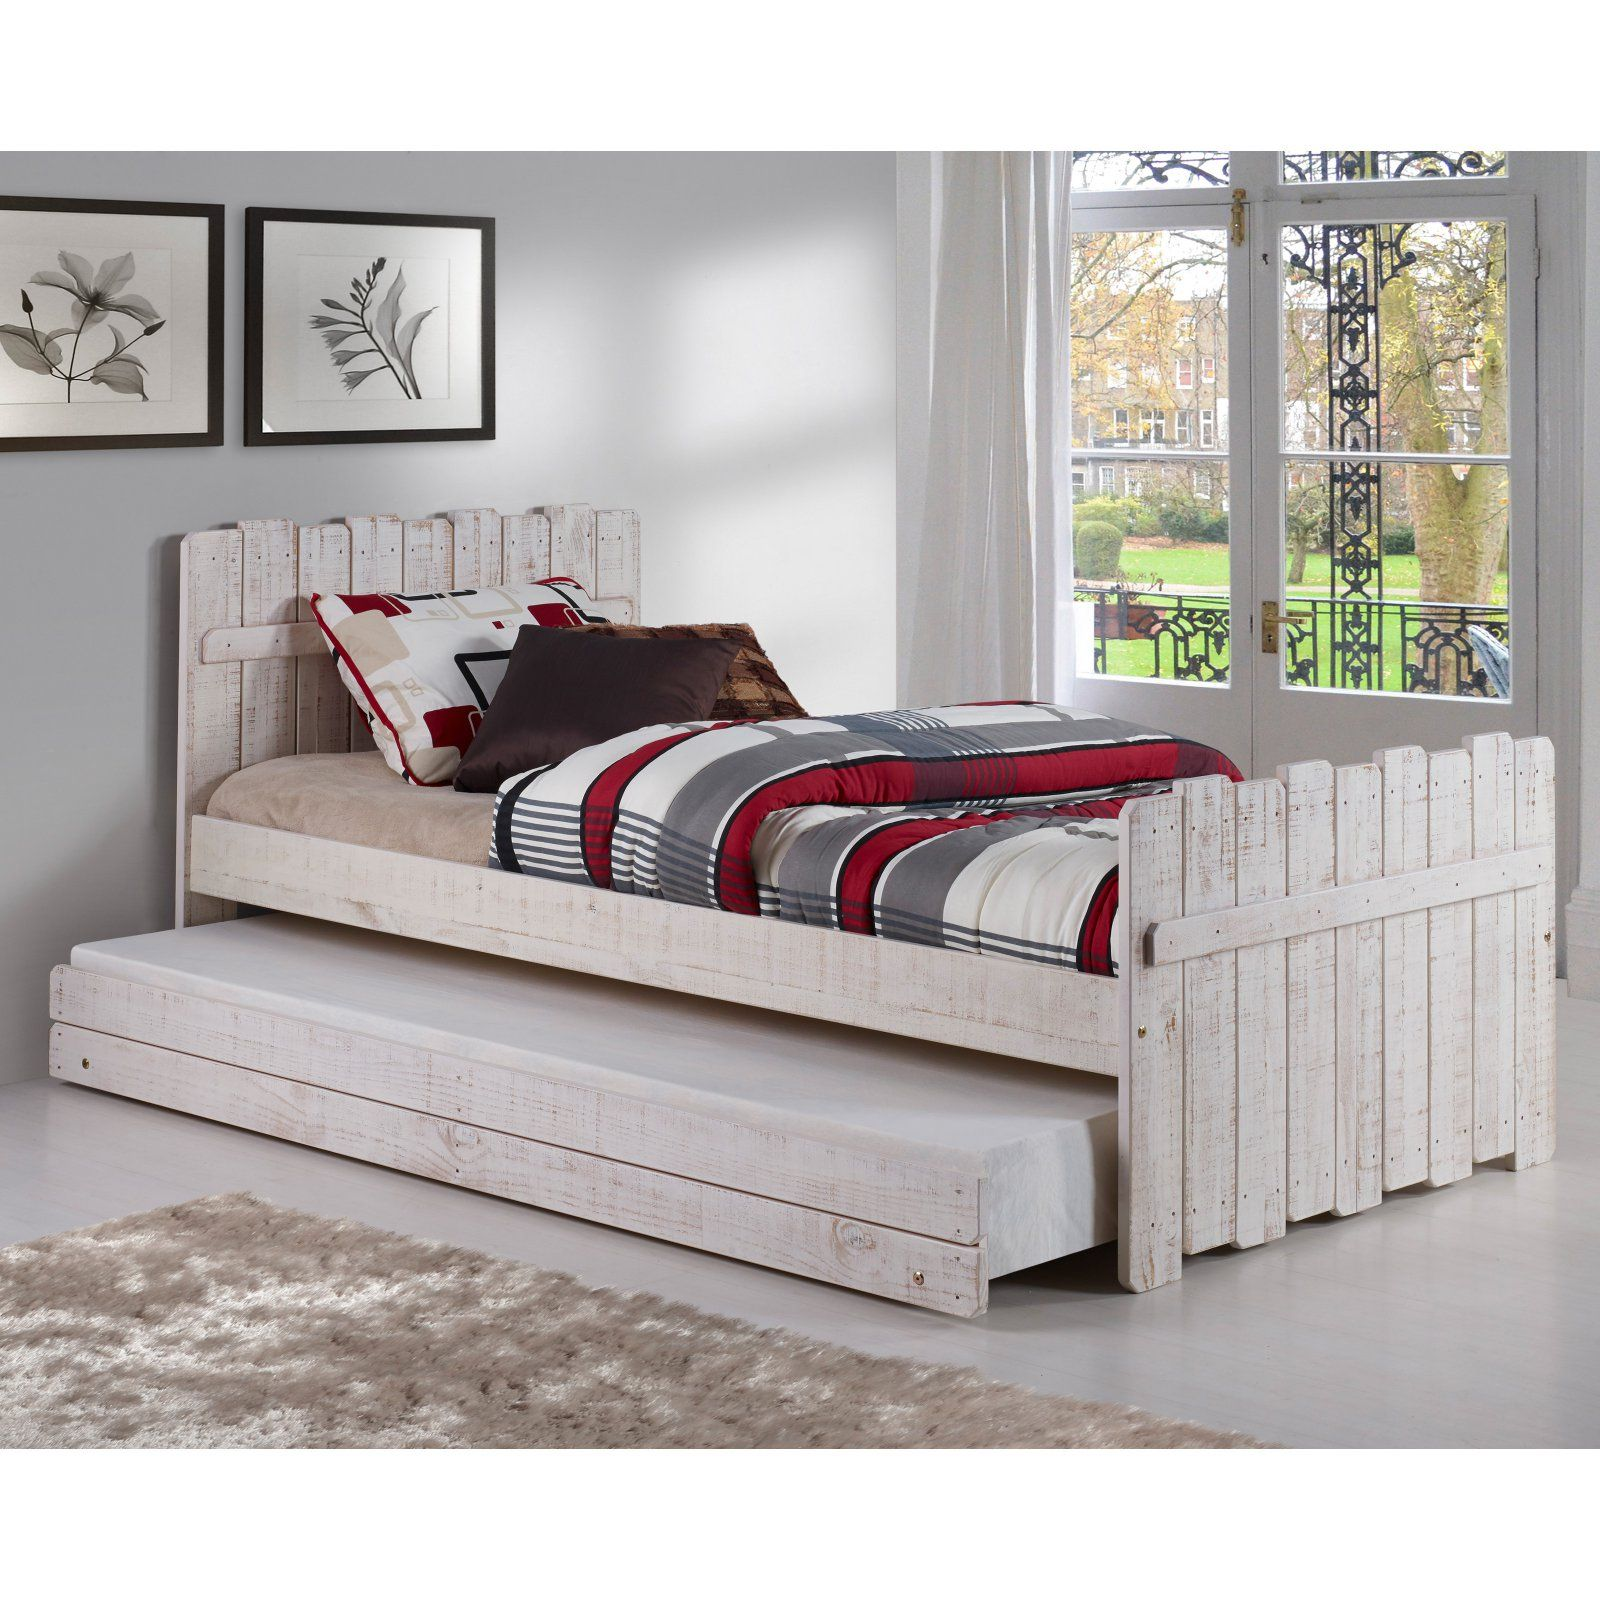 Donco Tree House Rustic Twin Bed Twin Trundle Bed Trundle Bed Rustic Wood Bed Frame